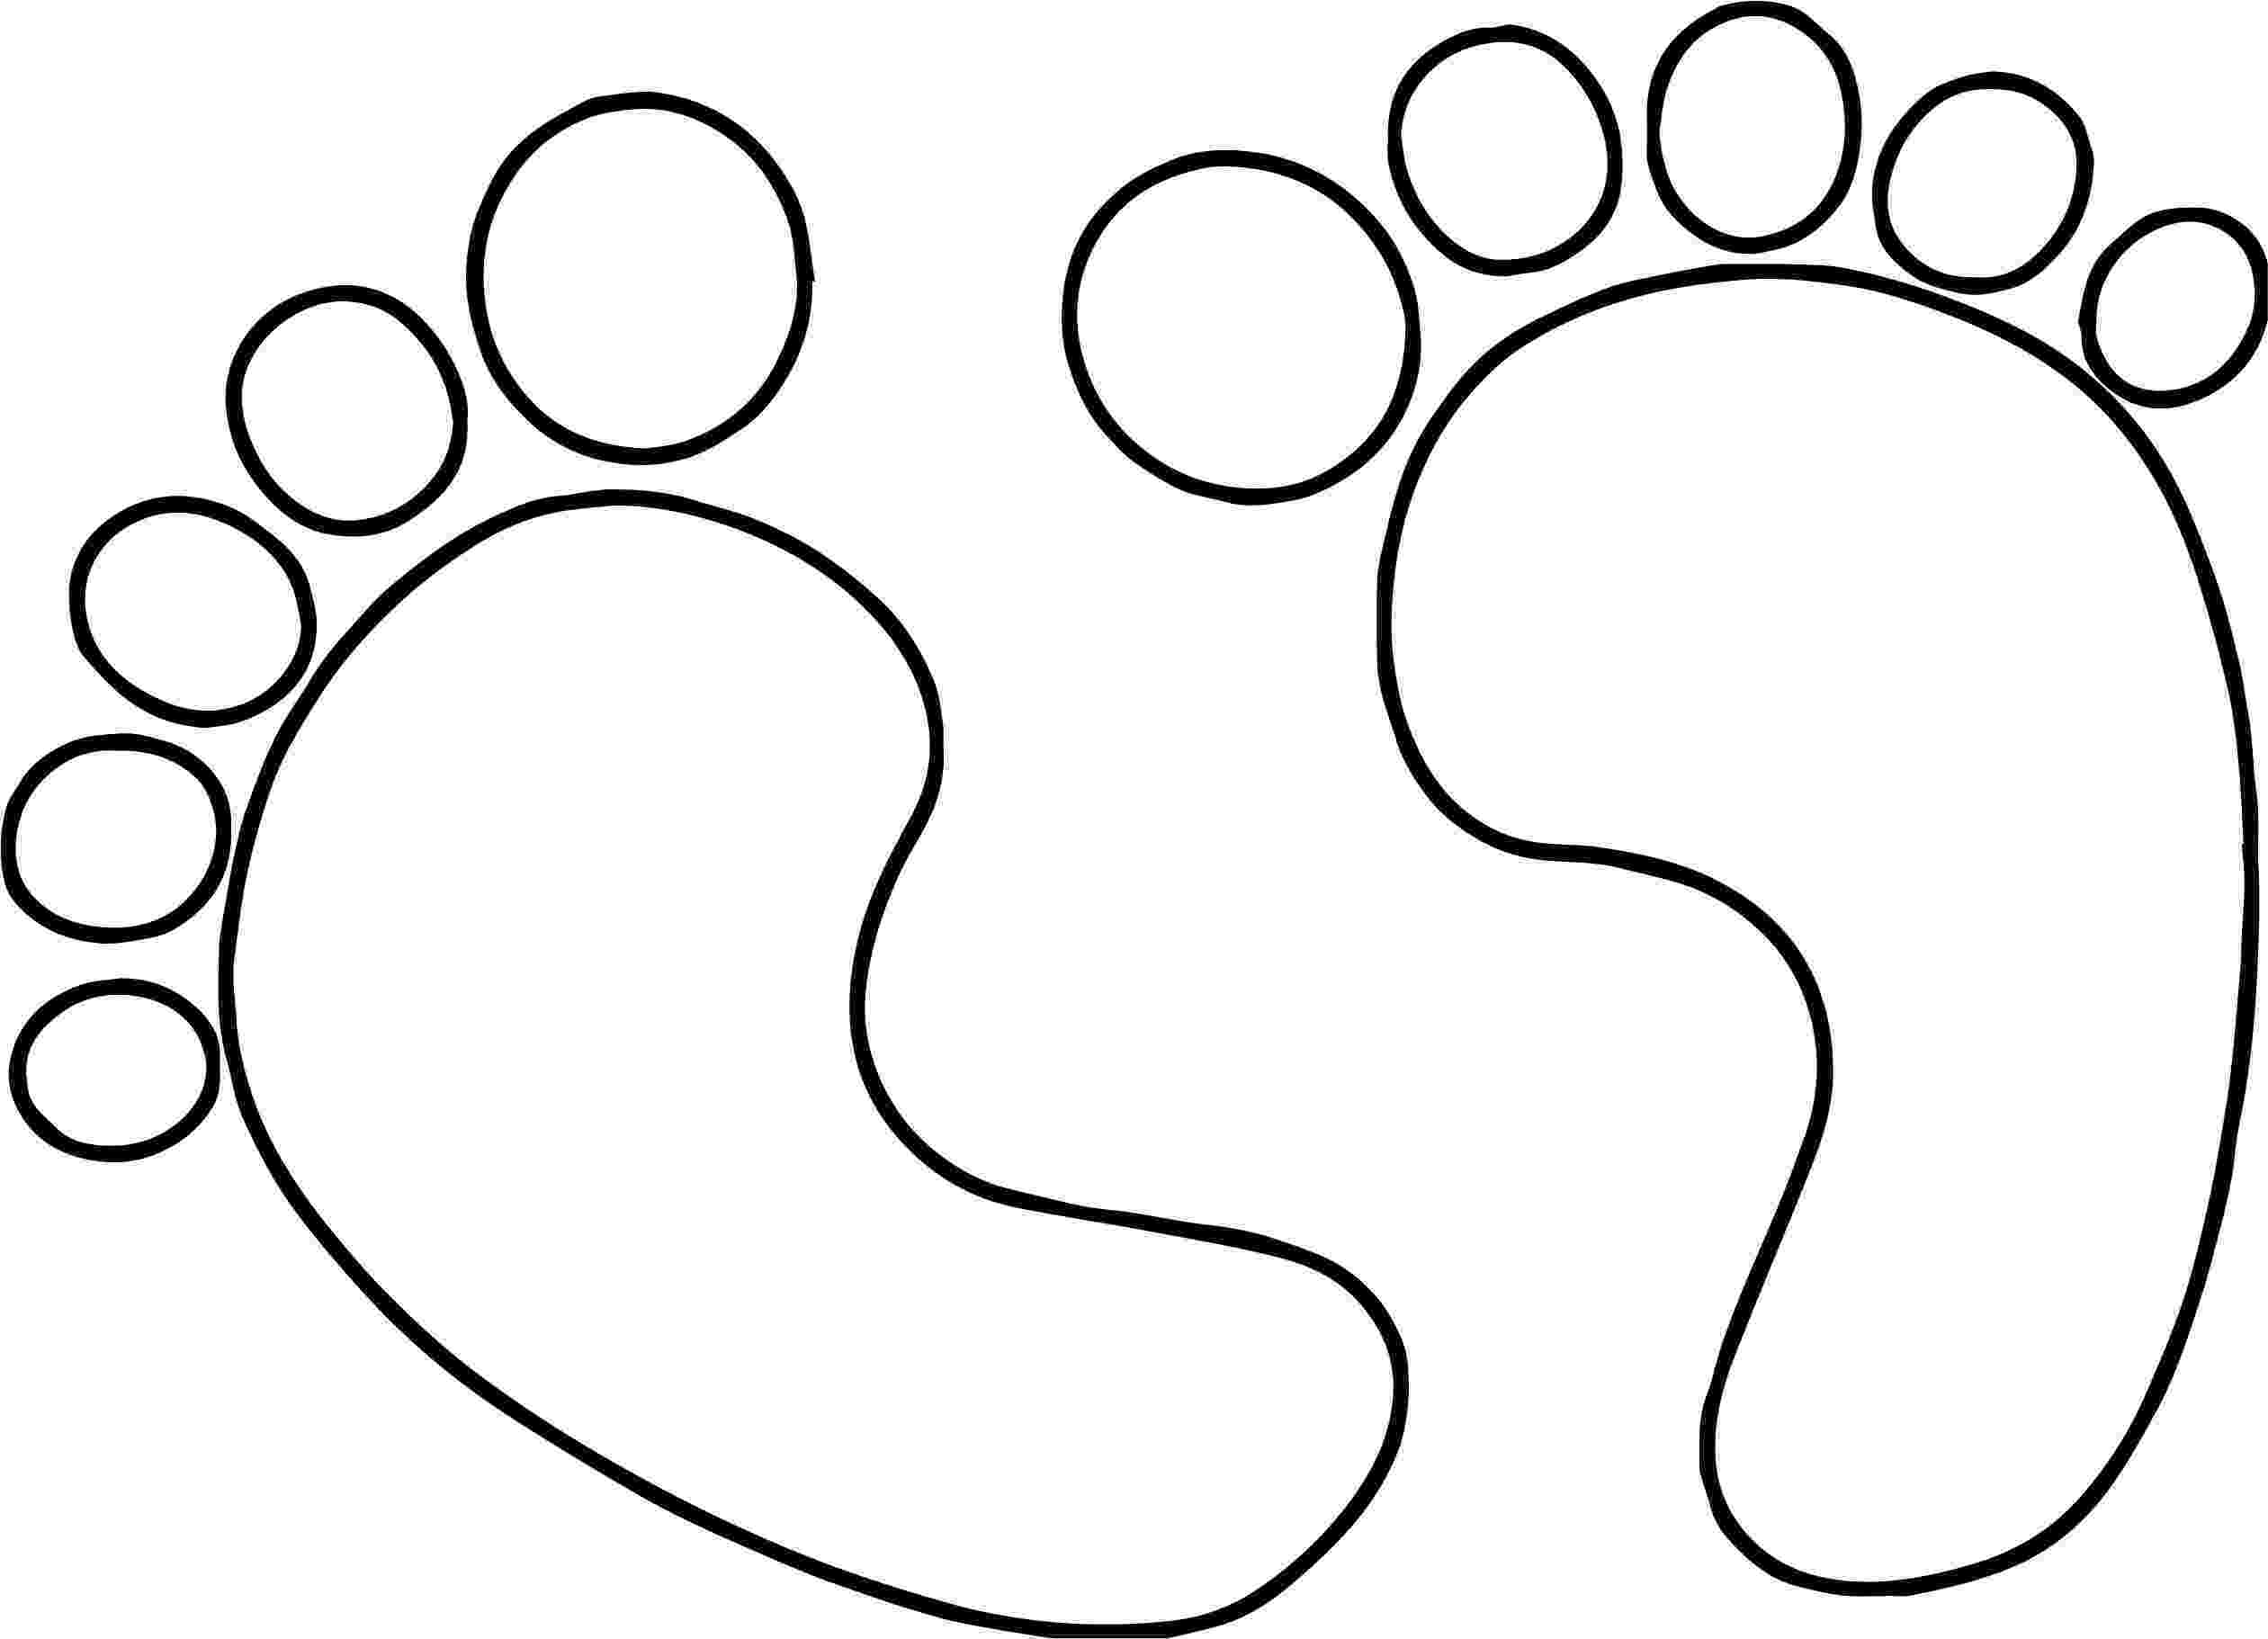 foot coloring page transport colouring pages page foot coloring